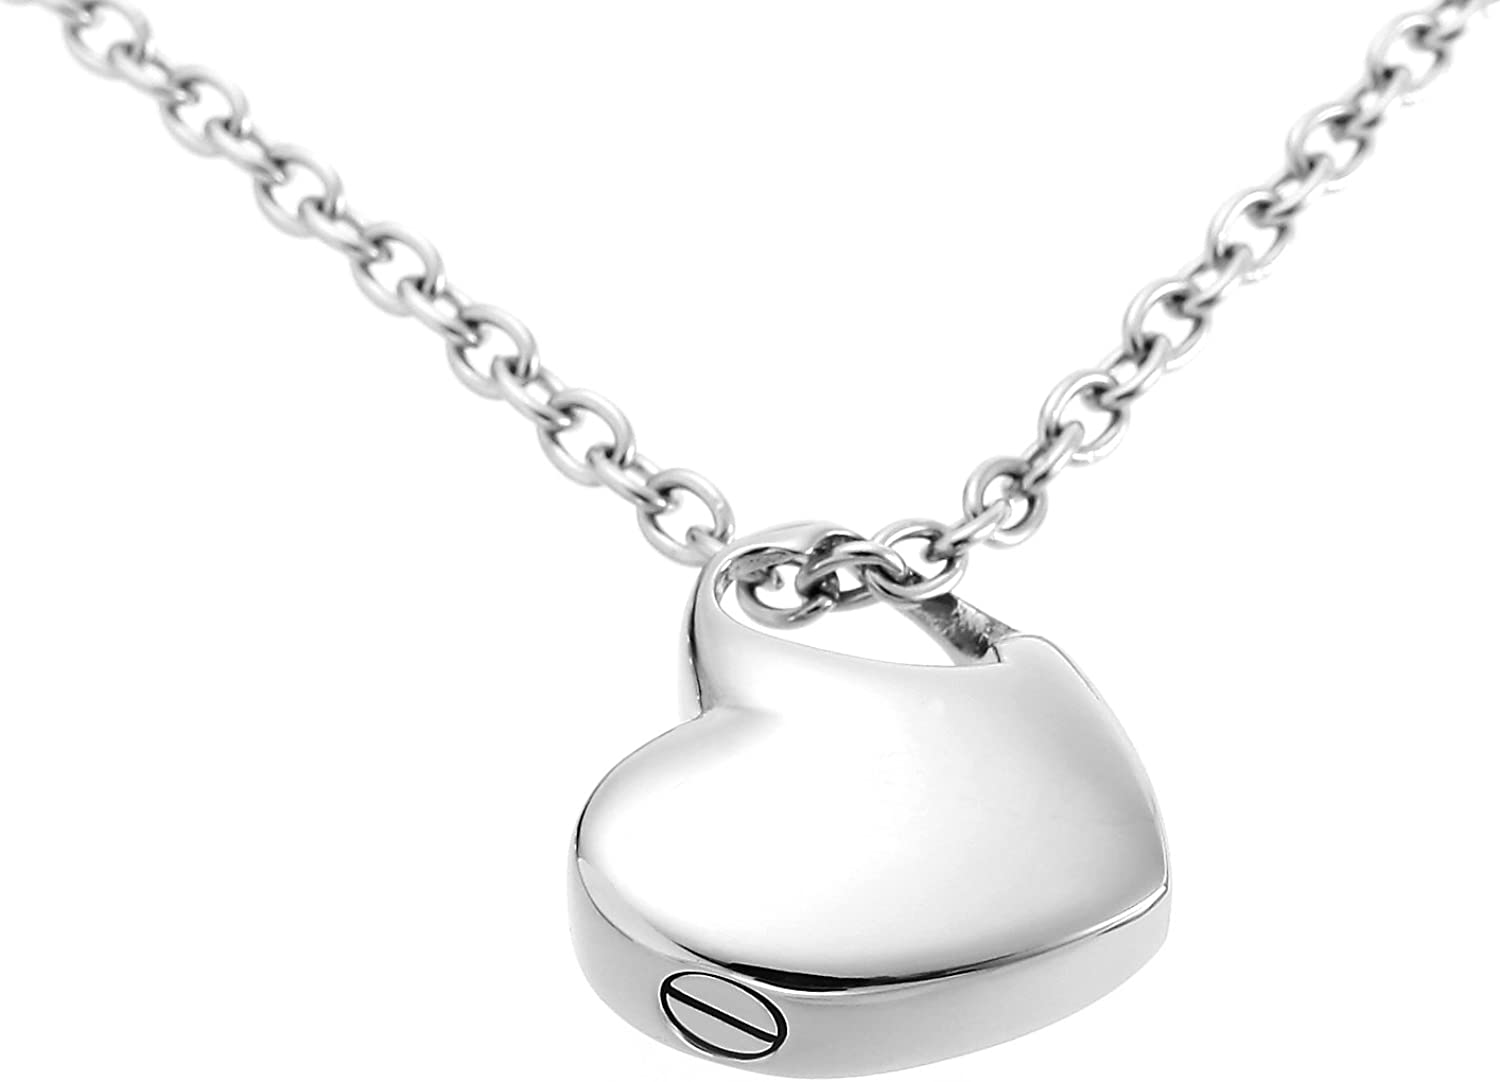 Amazon Com Hold My Heart Pendant Cremation Urn Jewelry Necklace With Filler Kit Ashes Jewelry